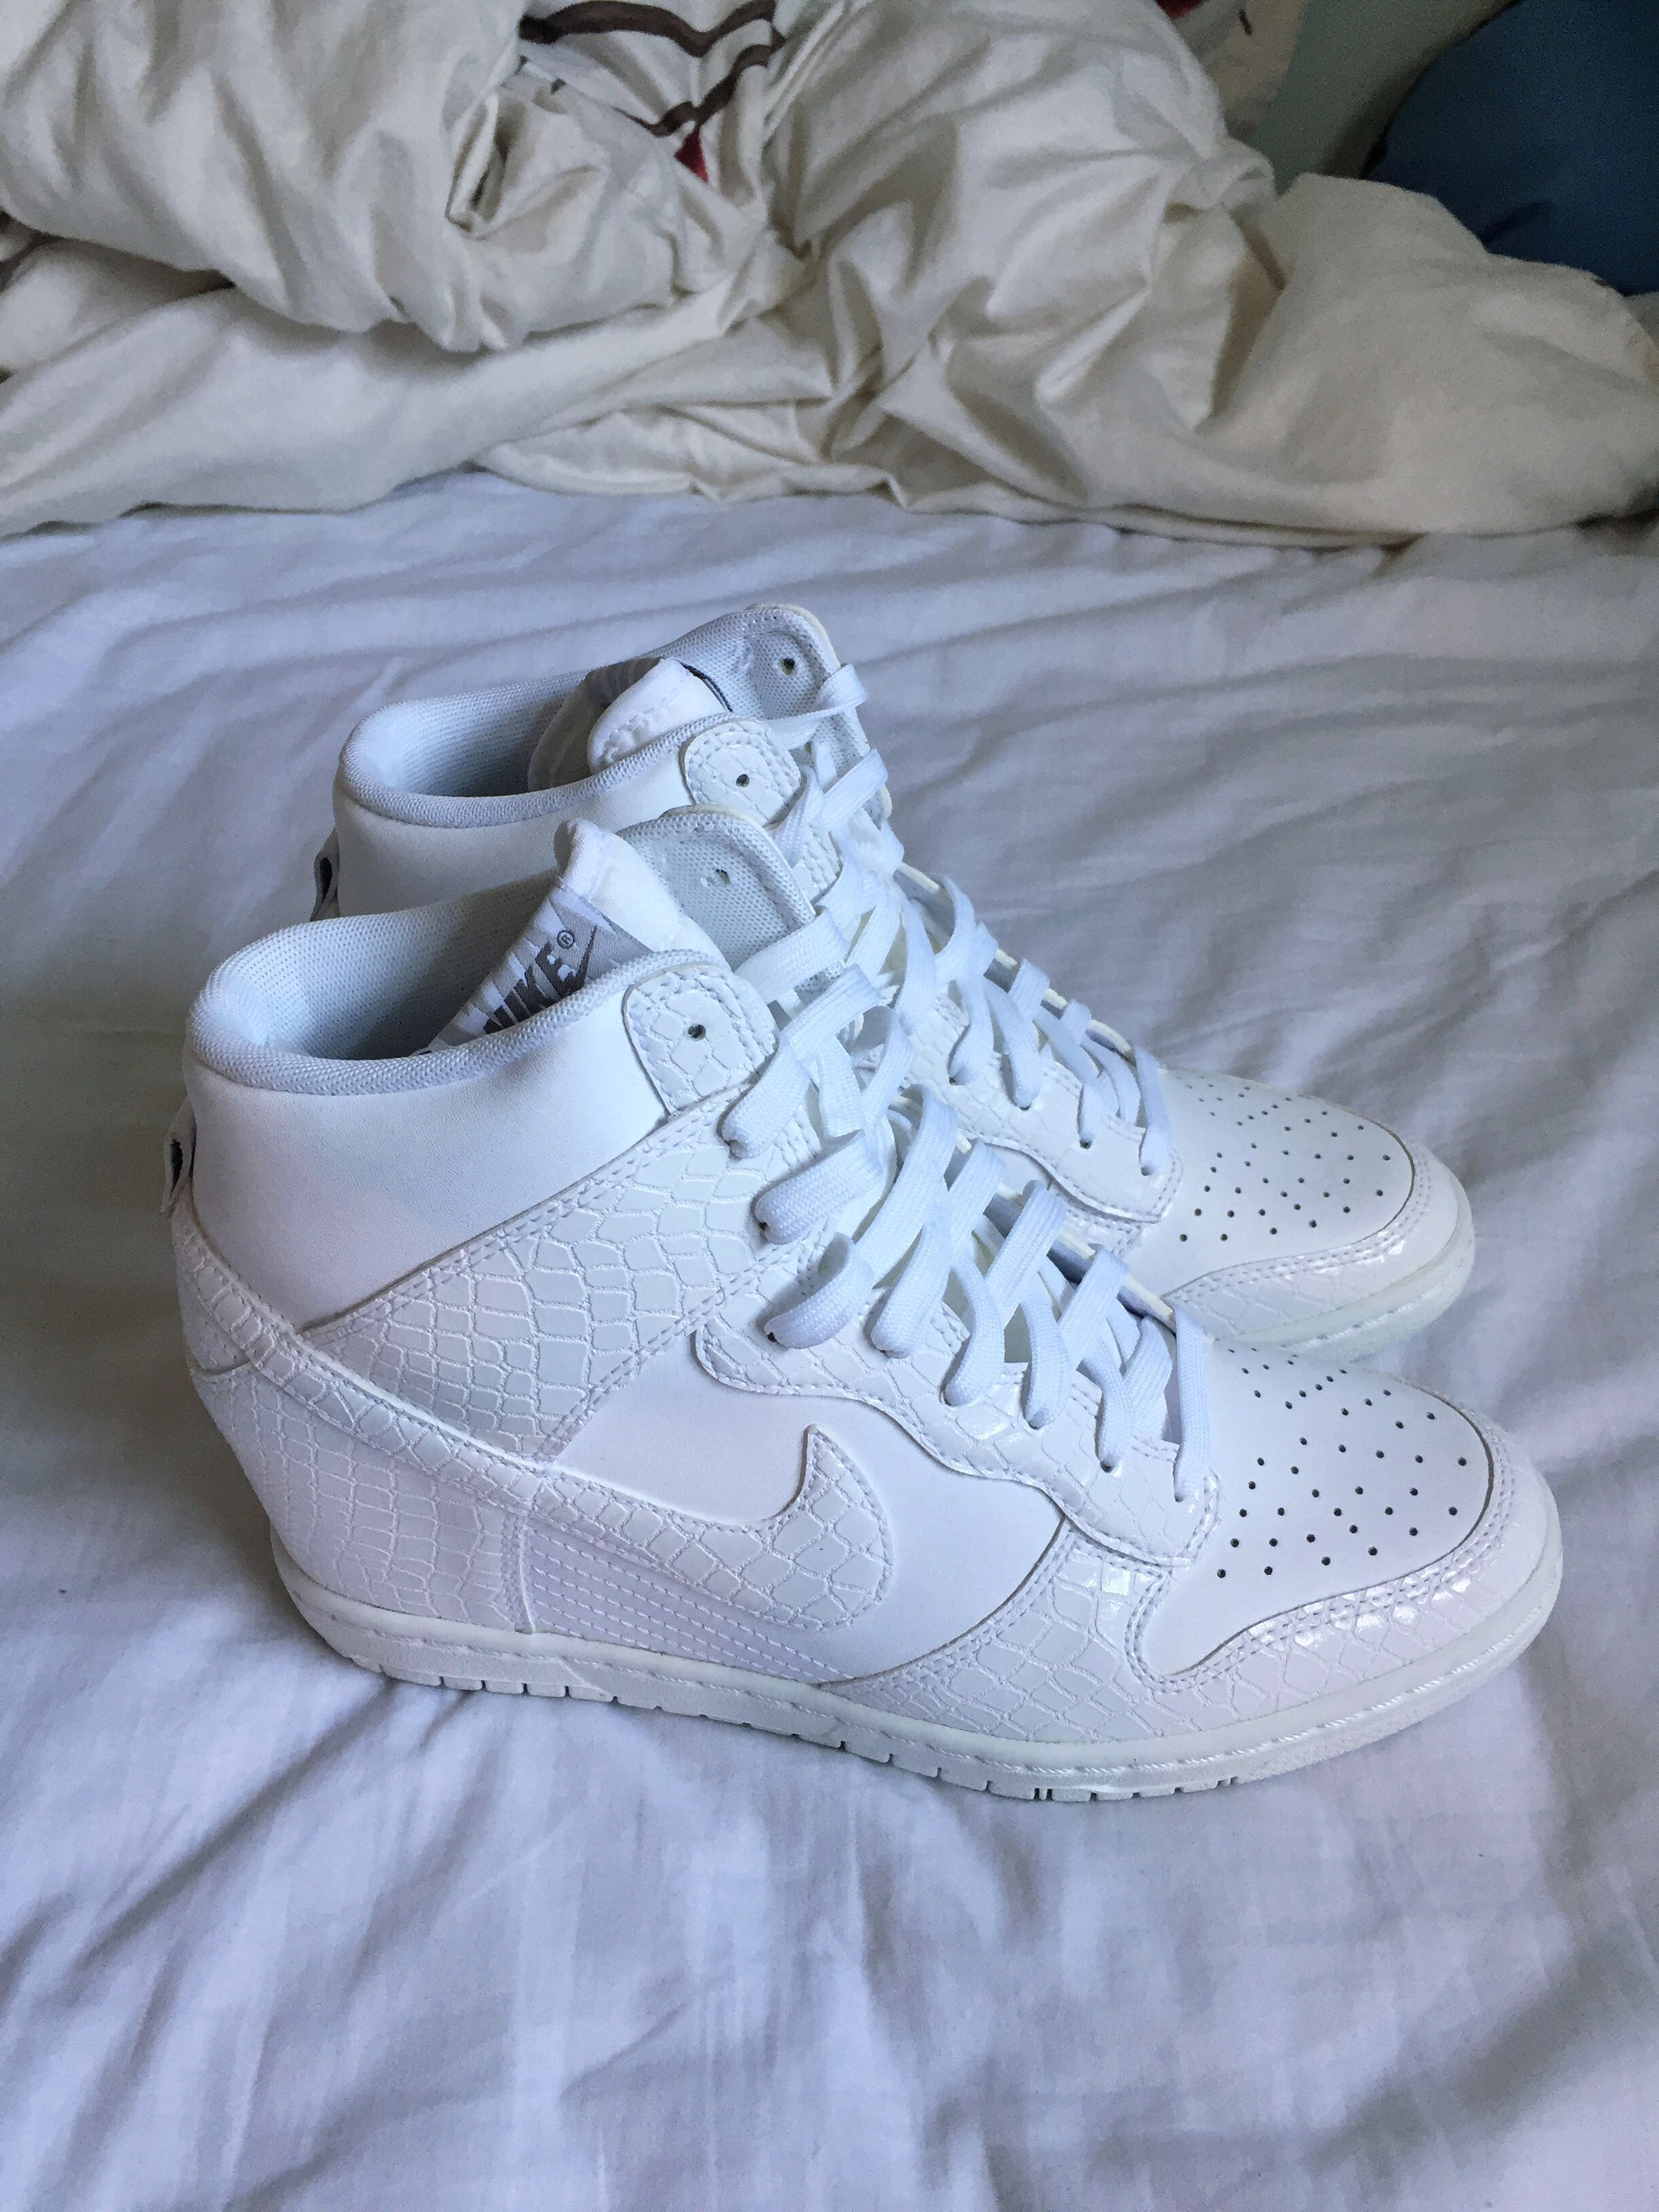 best cheap 6aab5 dcf4e ... high mesh white wedge trainers 57408 65911  australia nike dunk sky hi  white wedge sneakers womens fashion shoes on carousell f6adb a6188